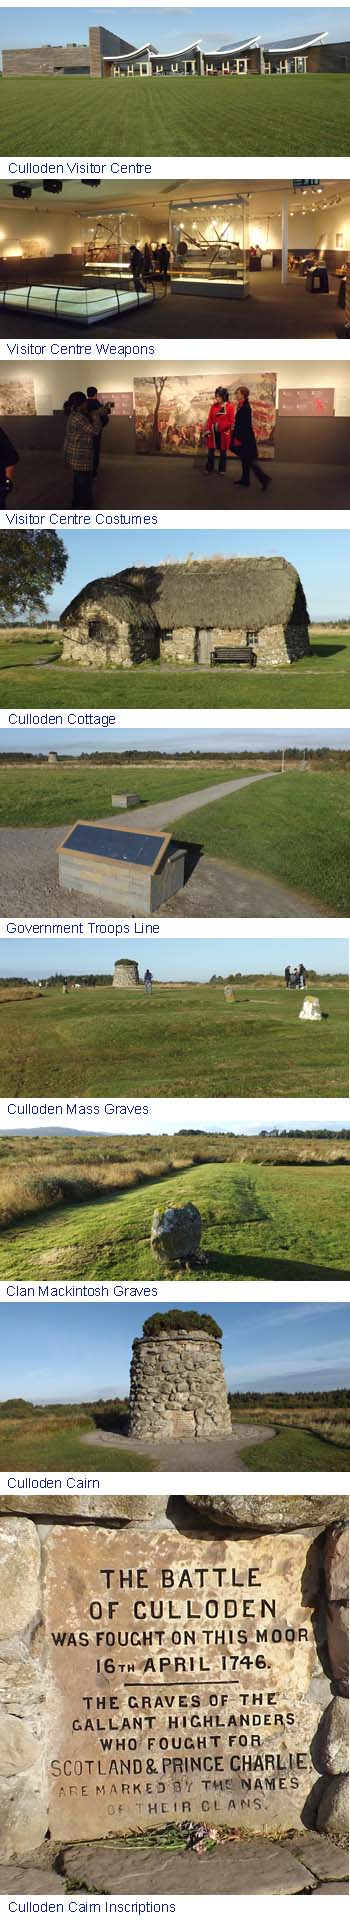 Culloden Images